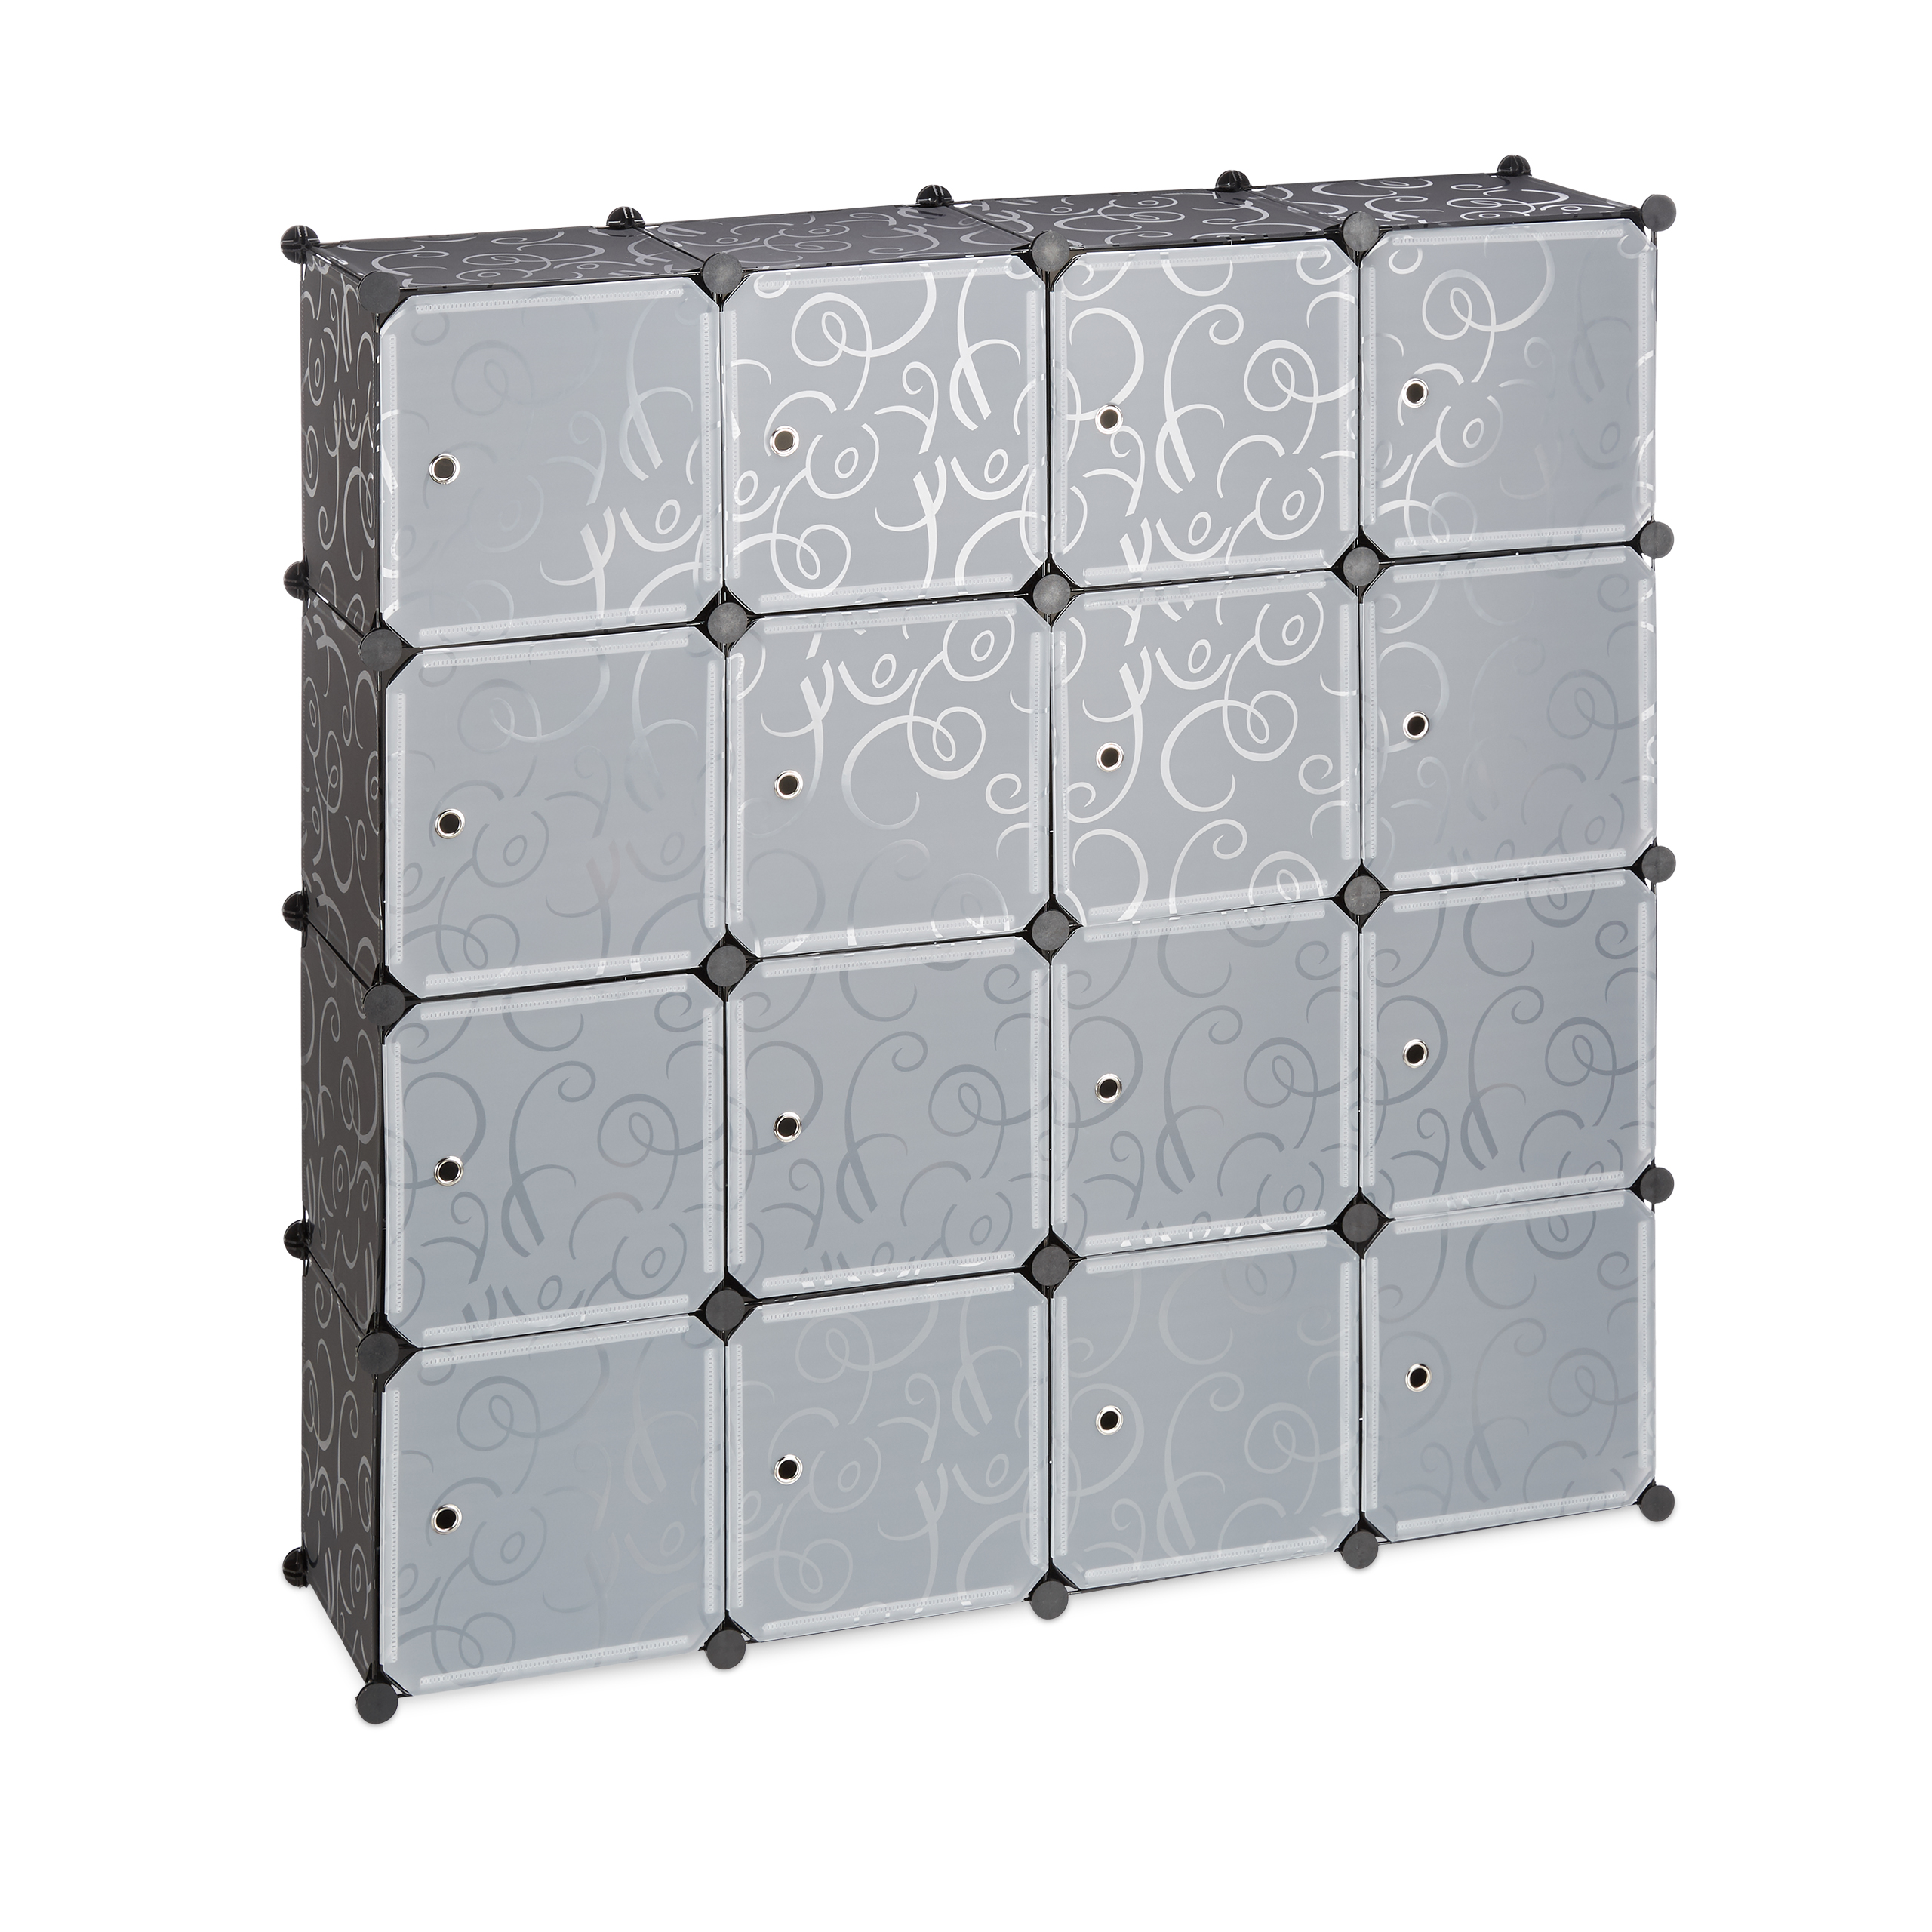 Boltless-Plastic-with-16-Compartments-Shelving-System-DIY-with-doors-Plastic-Cabinet thumbnail 5